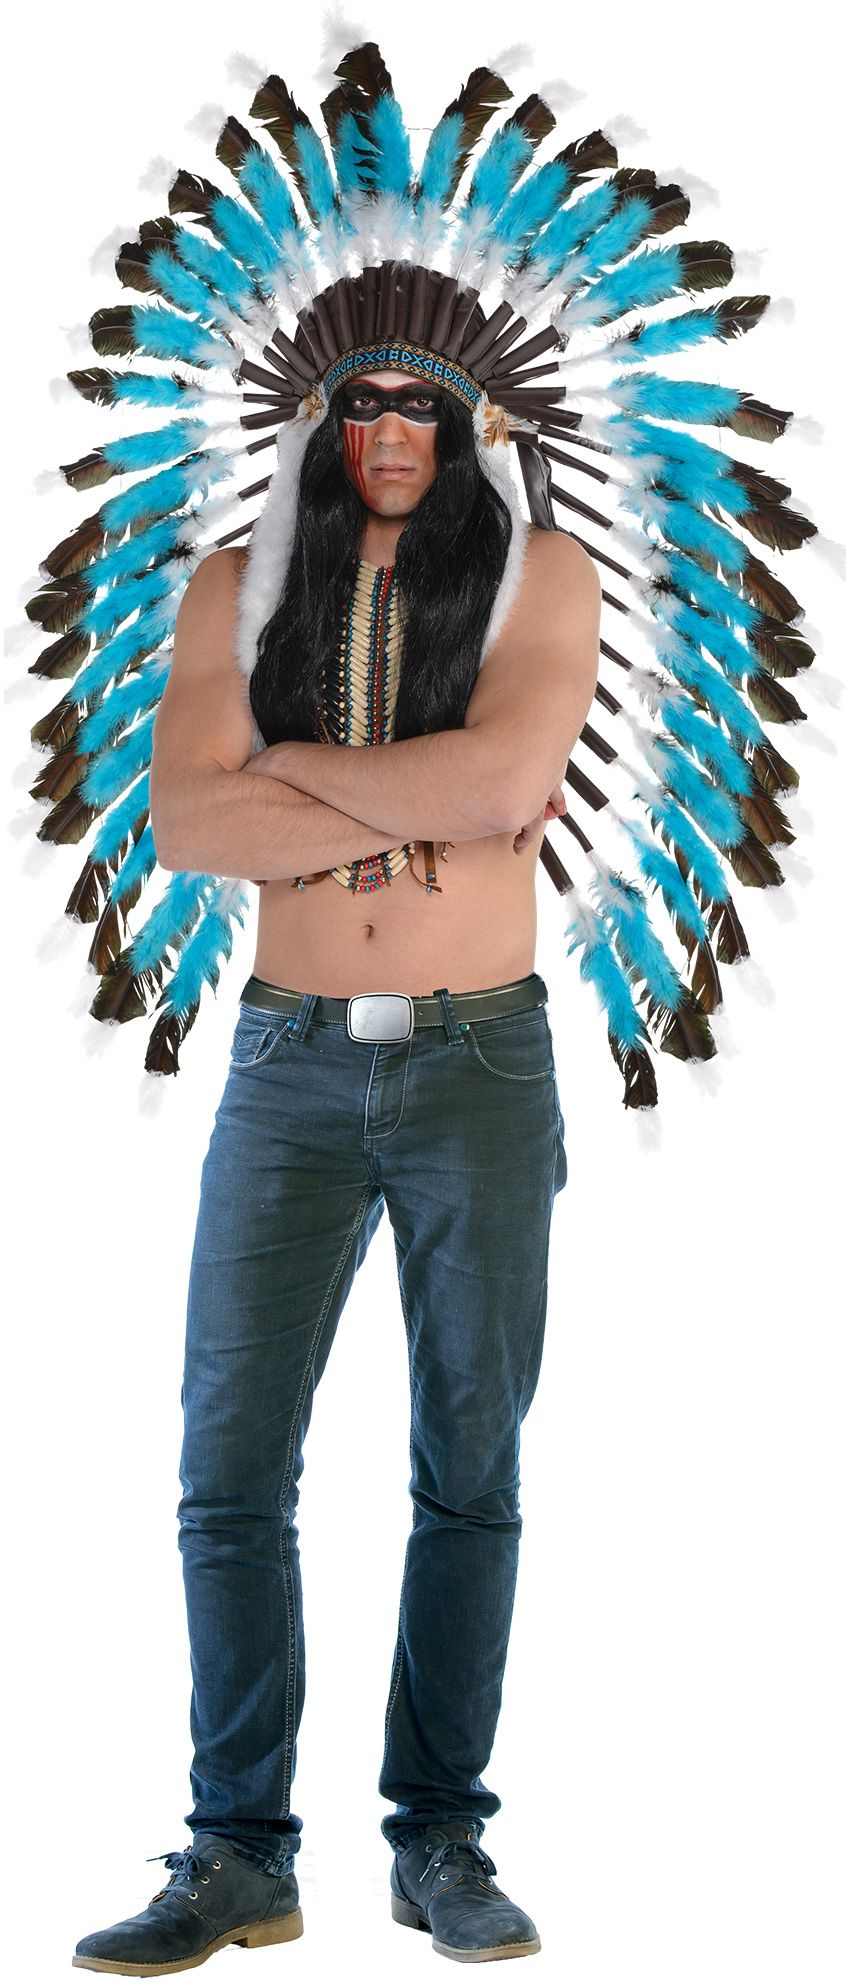 Create Your Look - Male Native American Indian